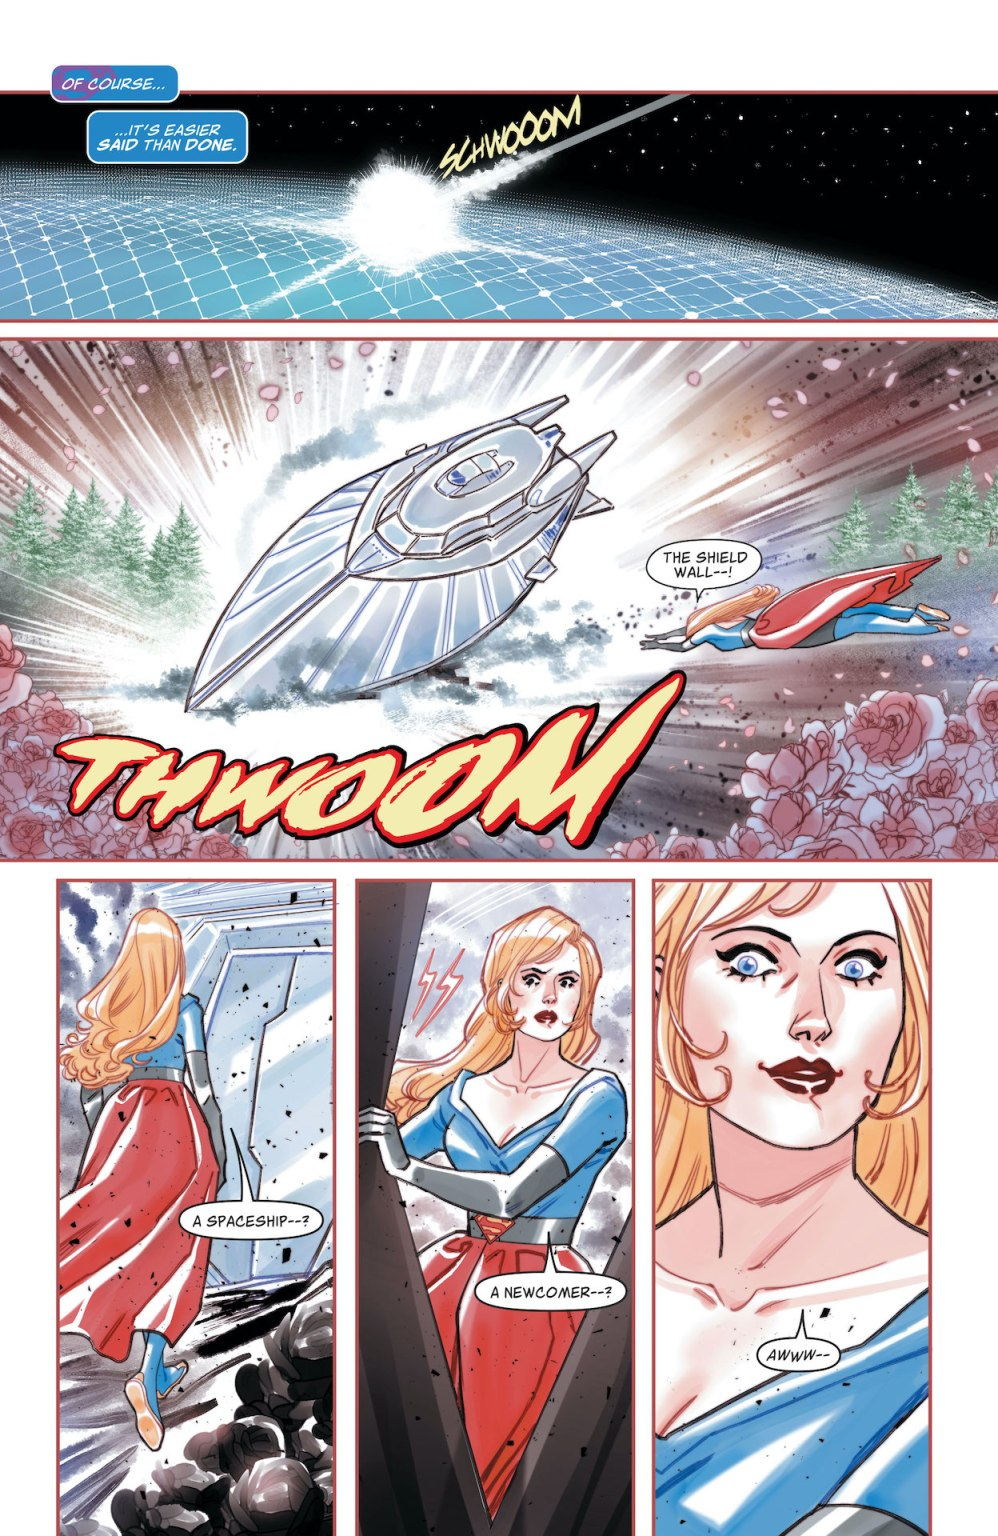 Kara Zor-El, Superwoman #1 preview